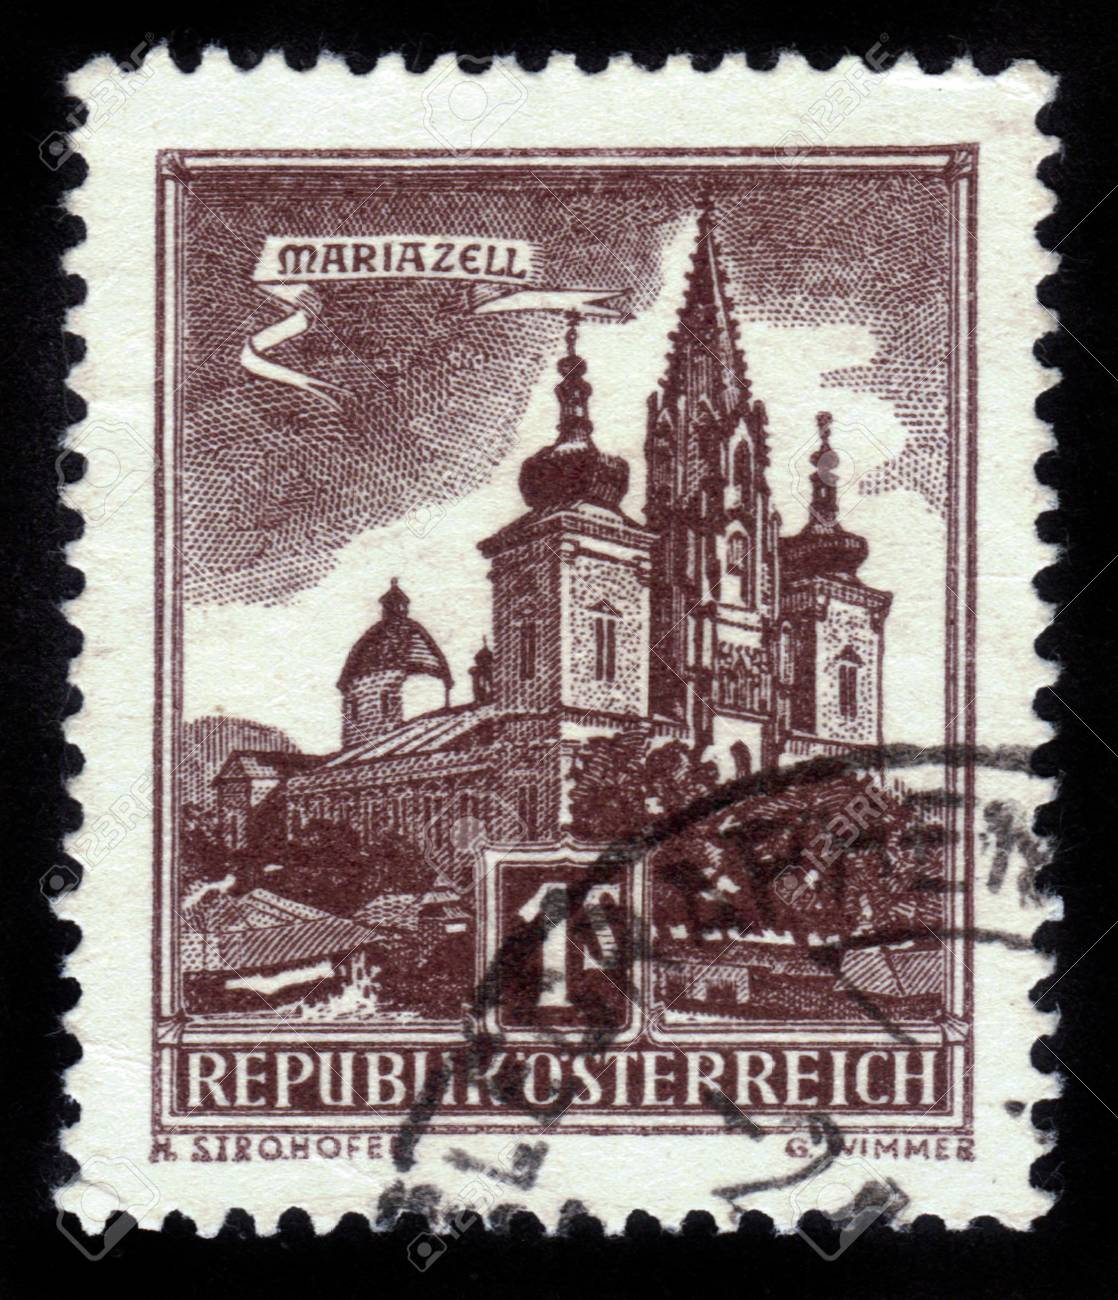 AUSTRIA - CIRCA 1959: A stamp printed in Austria shows image of the Austrian city of Mariazell, series, circa 1959 Stock Photo - 14720198